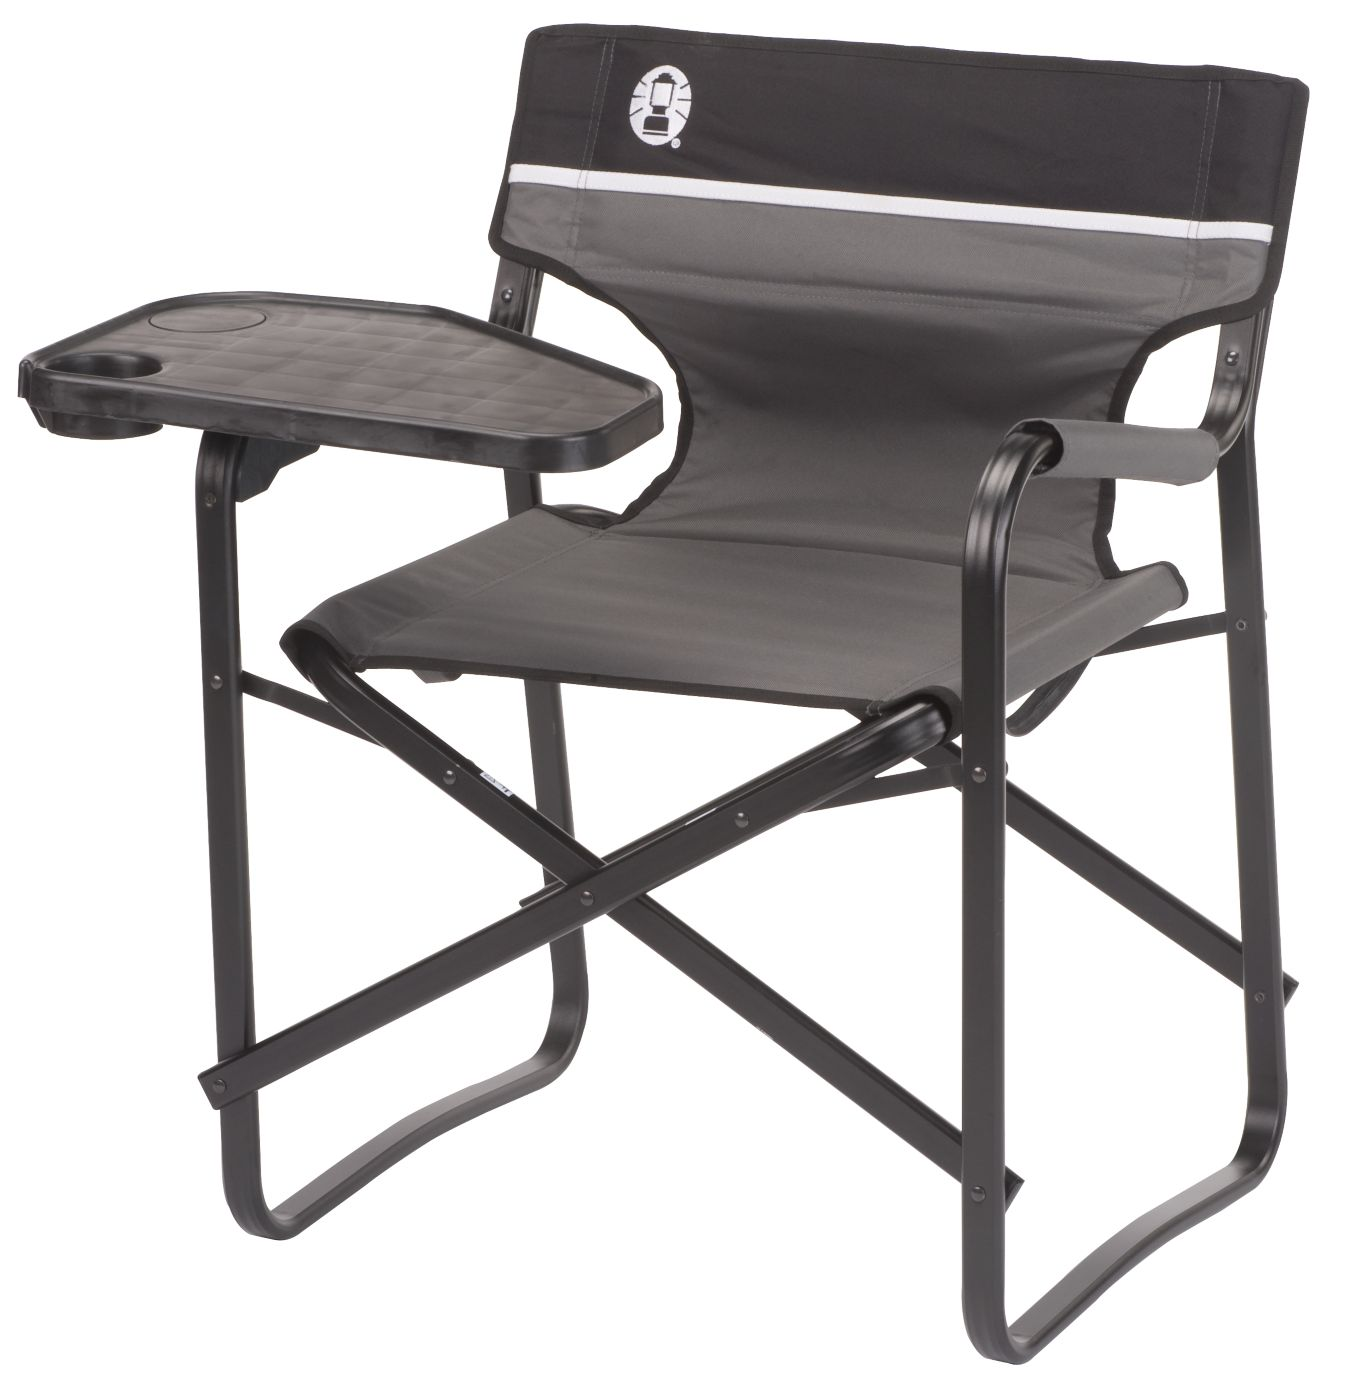 camp folding chairs tell city chair camping coleman aluminum deck with swivel table